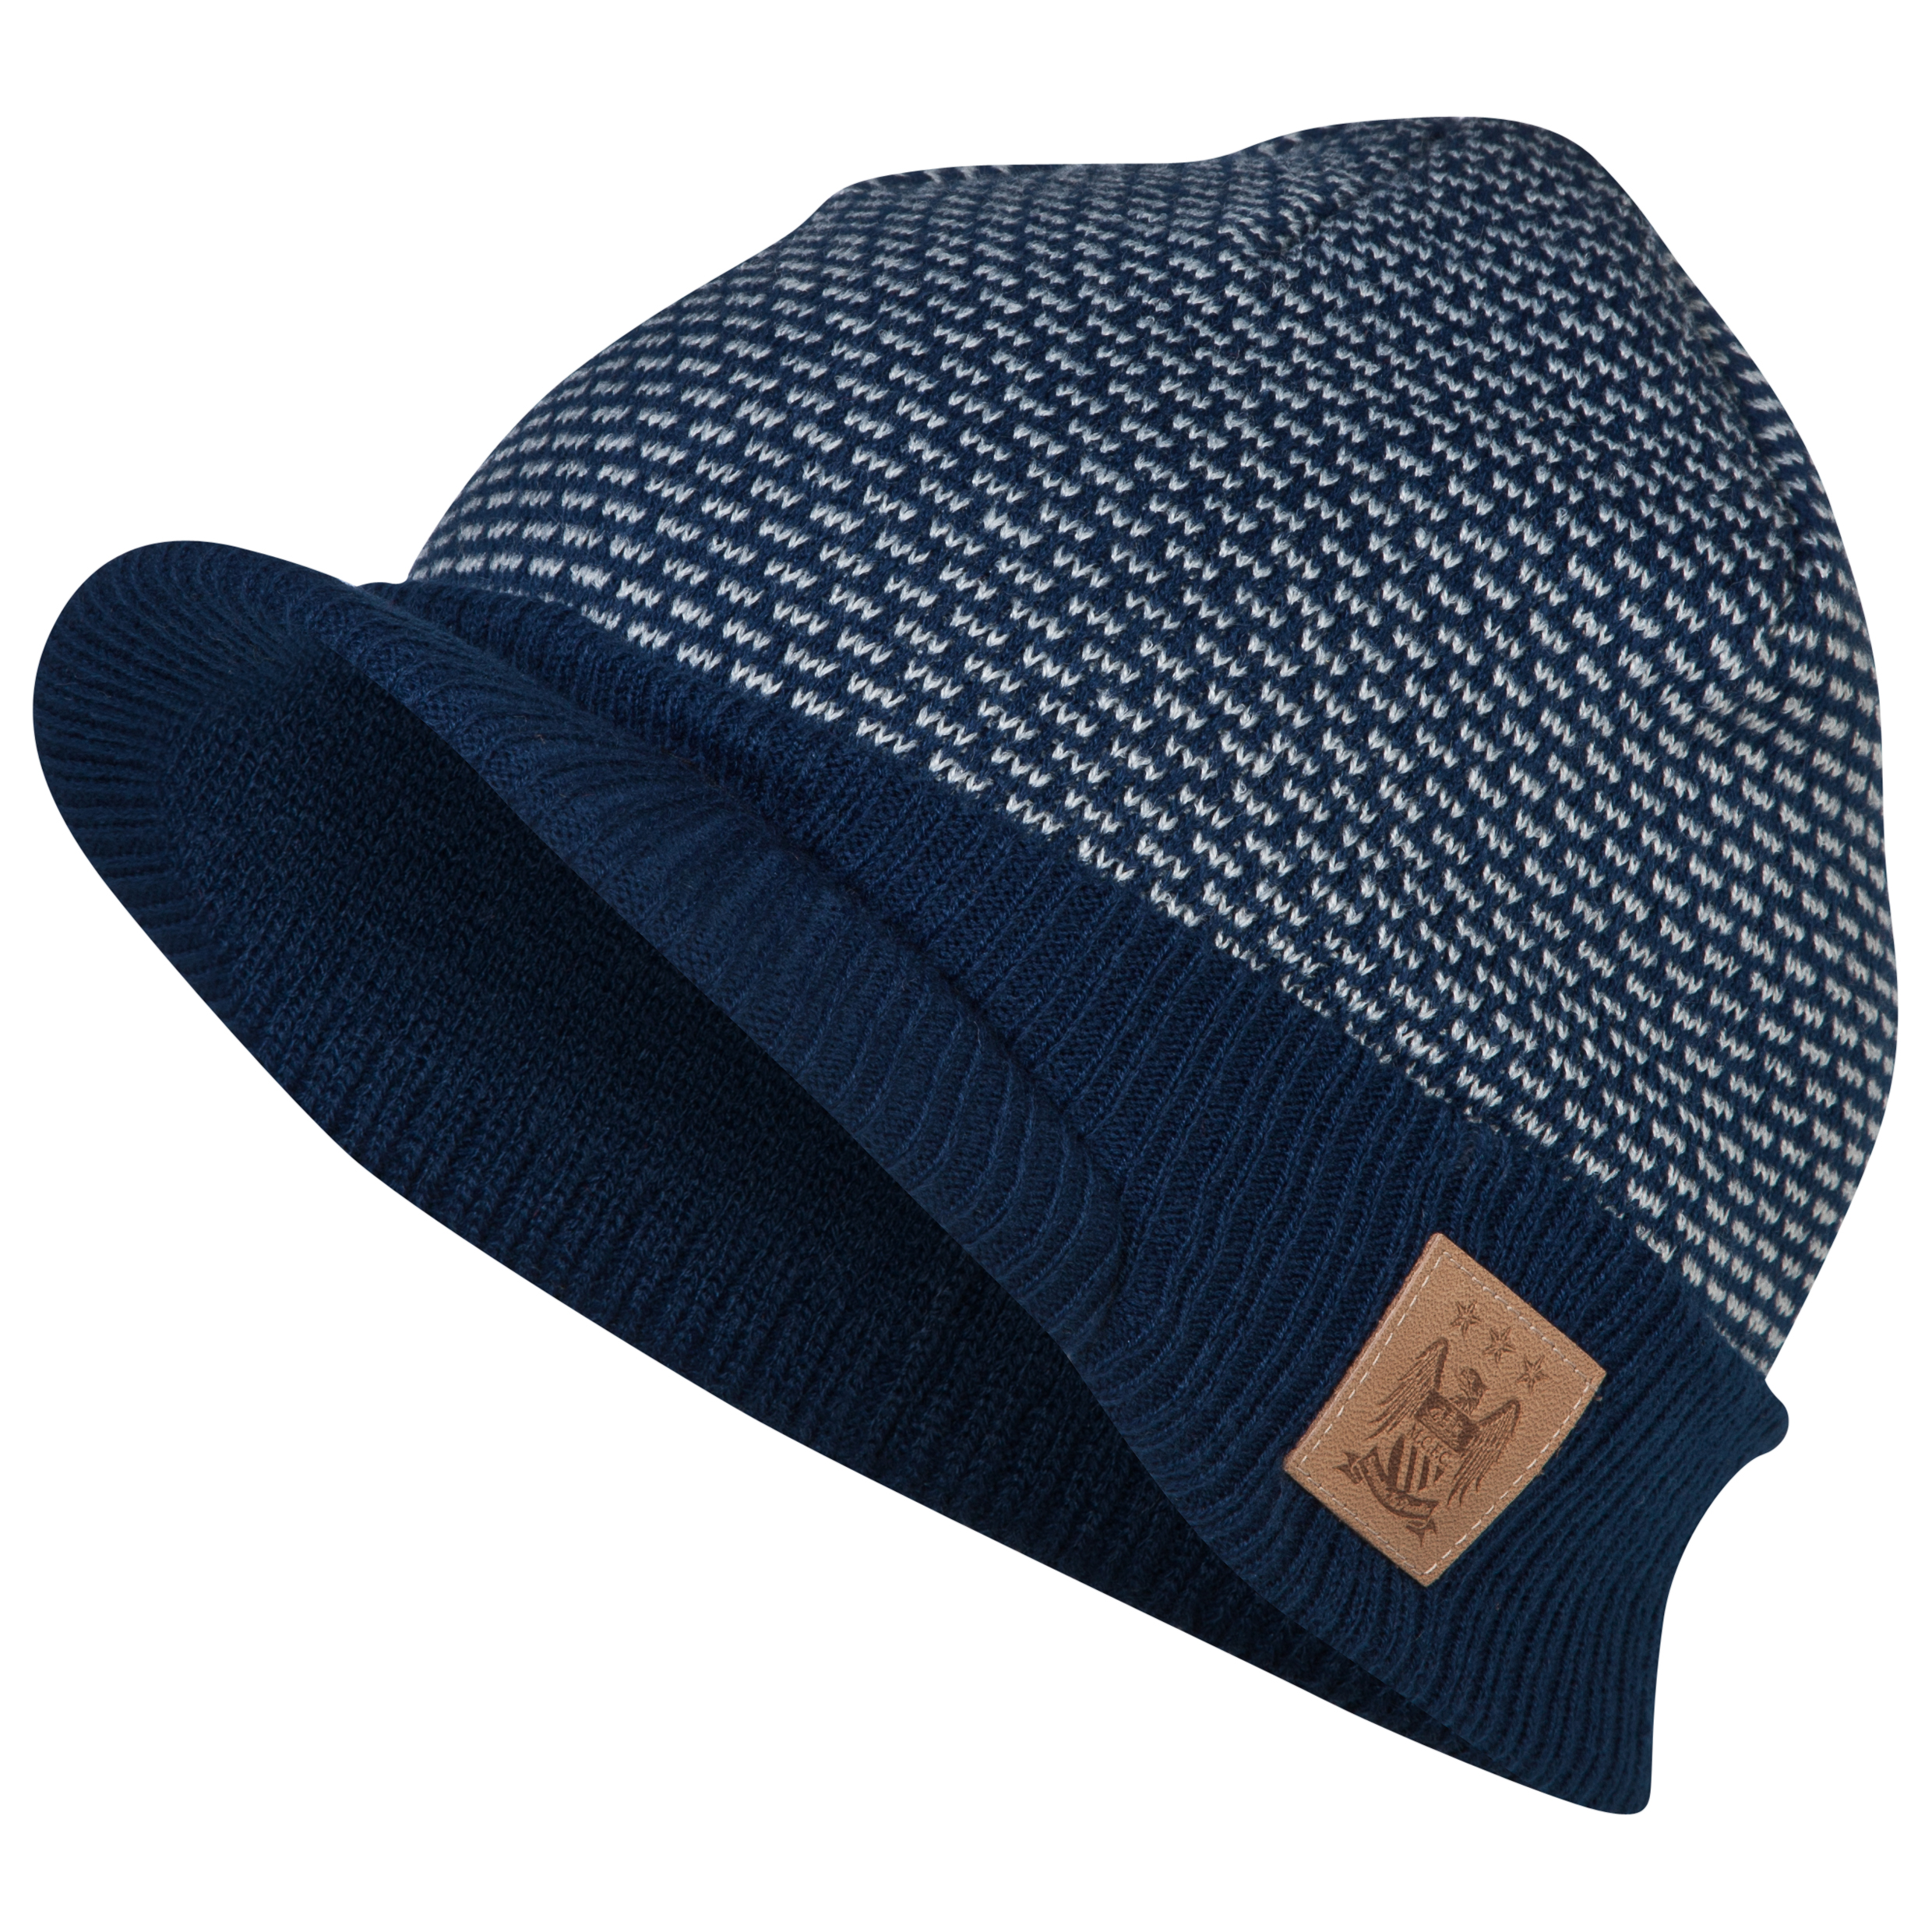 Manchester City Dash Peak Hat Navy